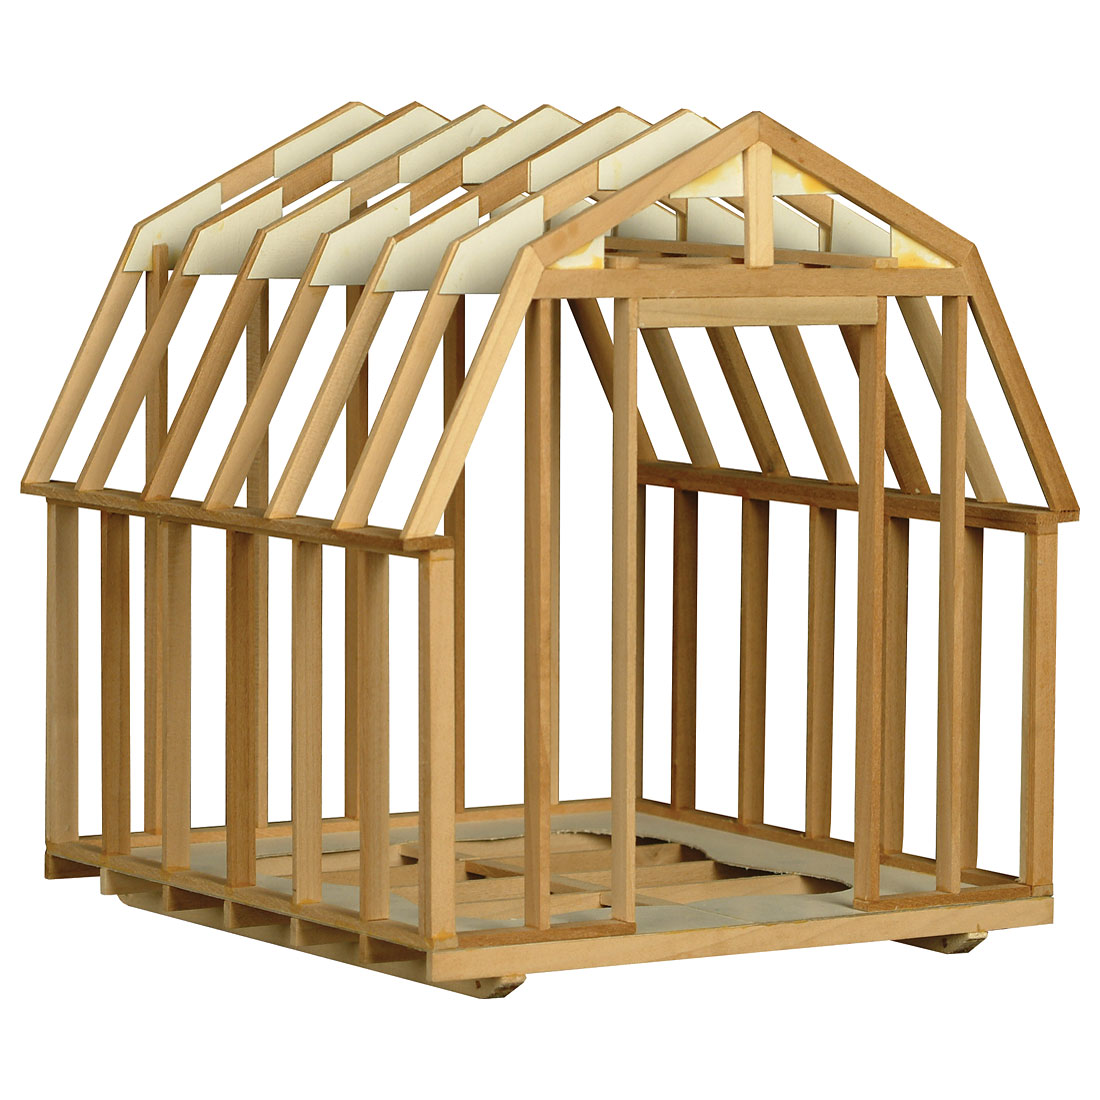 Utility building framing kit 101 w31573 for A frame house cost